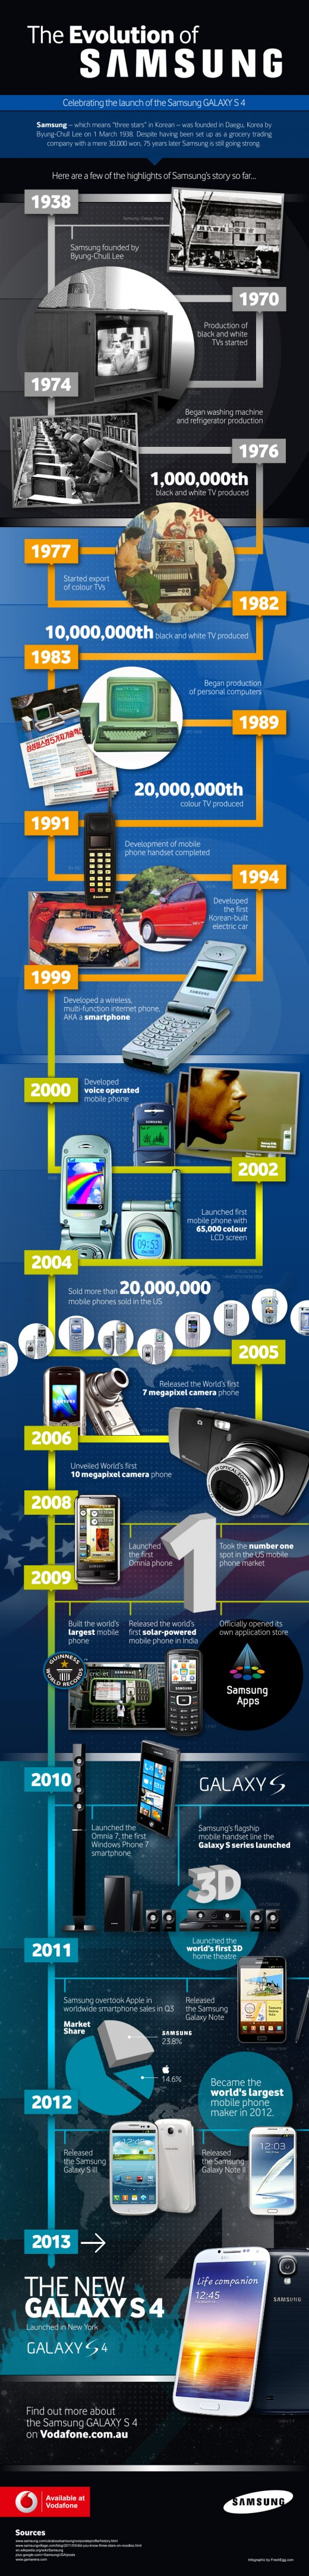 the-evolution-of-samsung_5188e6206f1ef